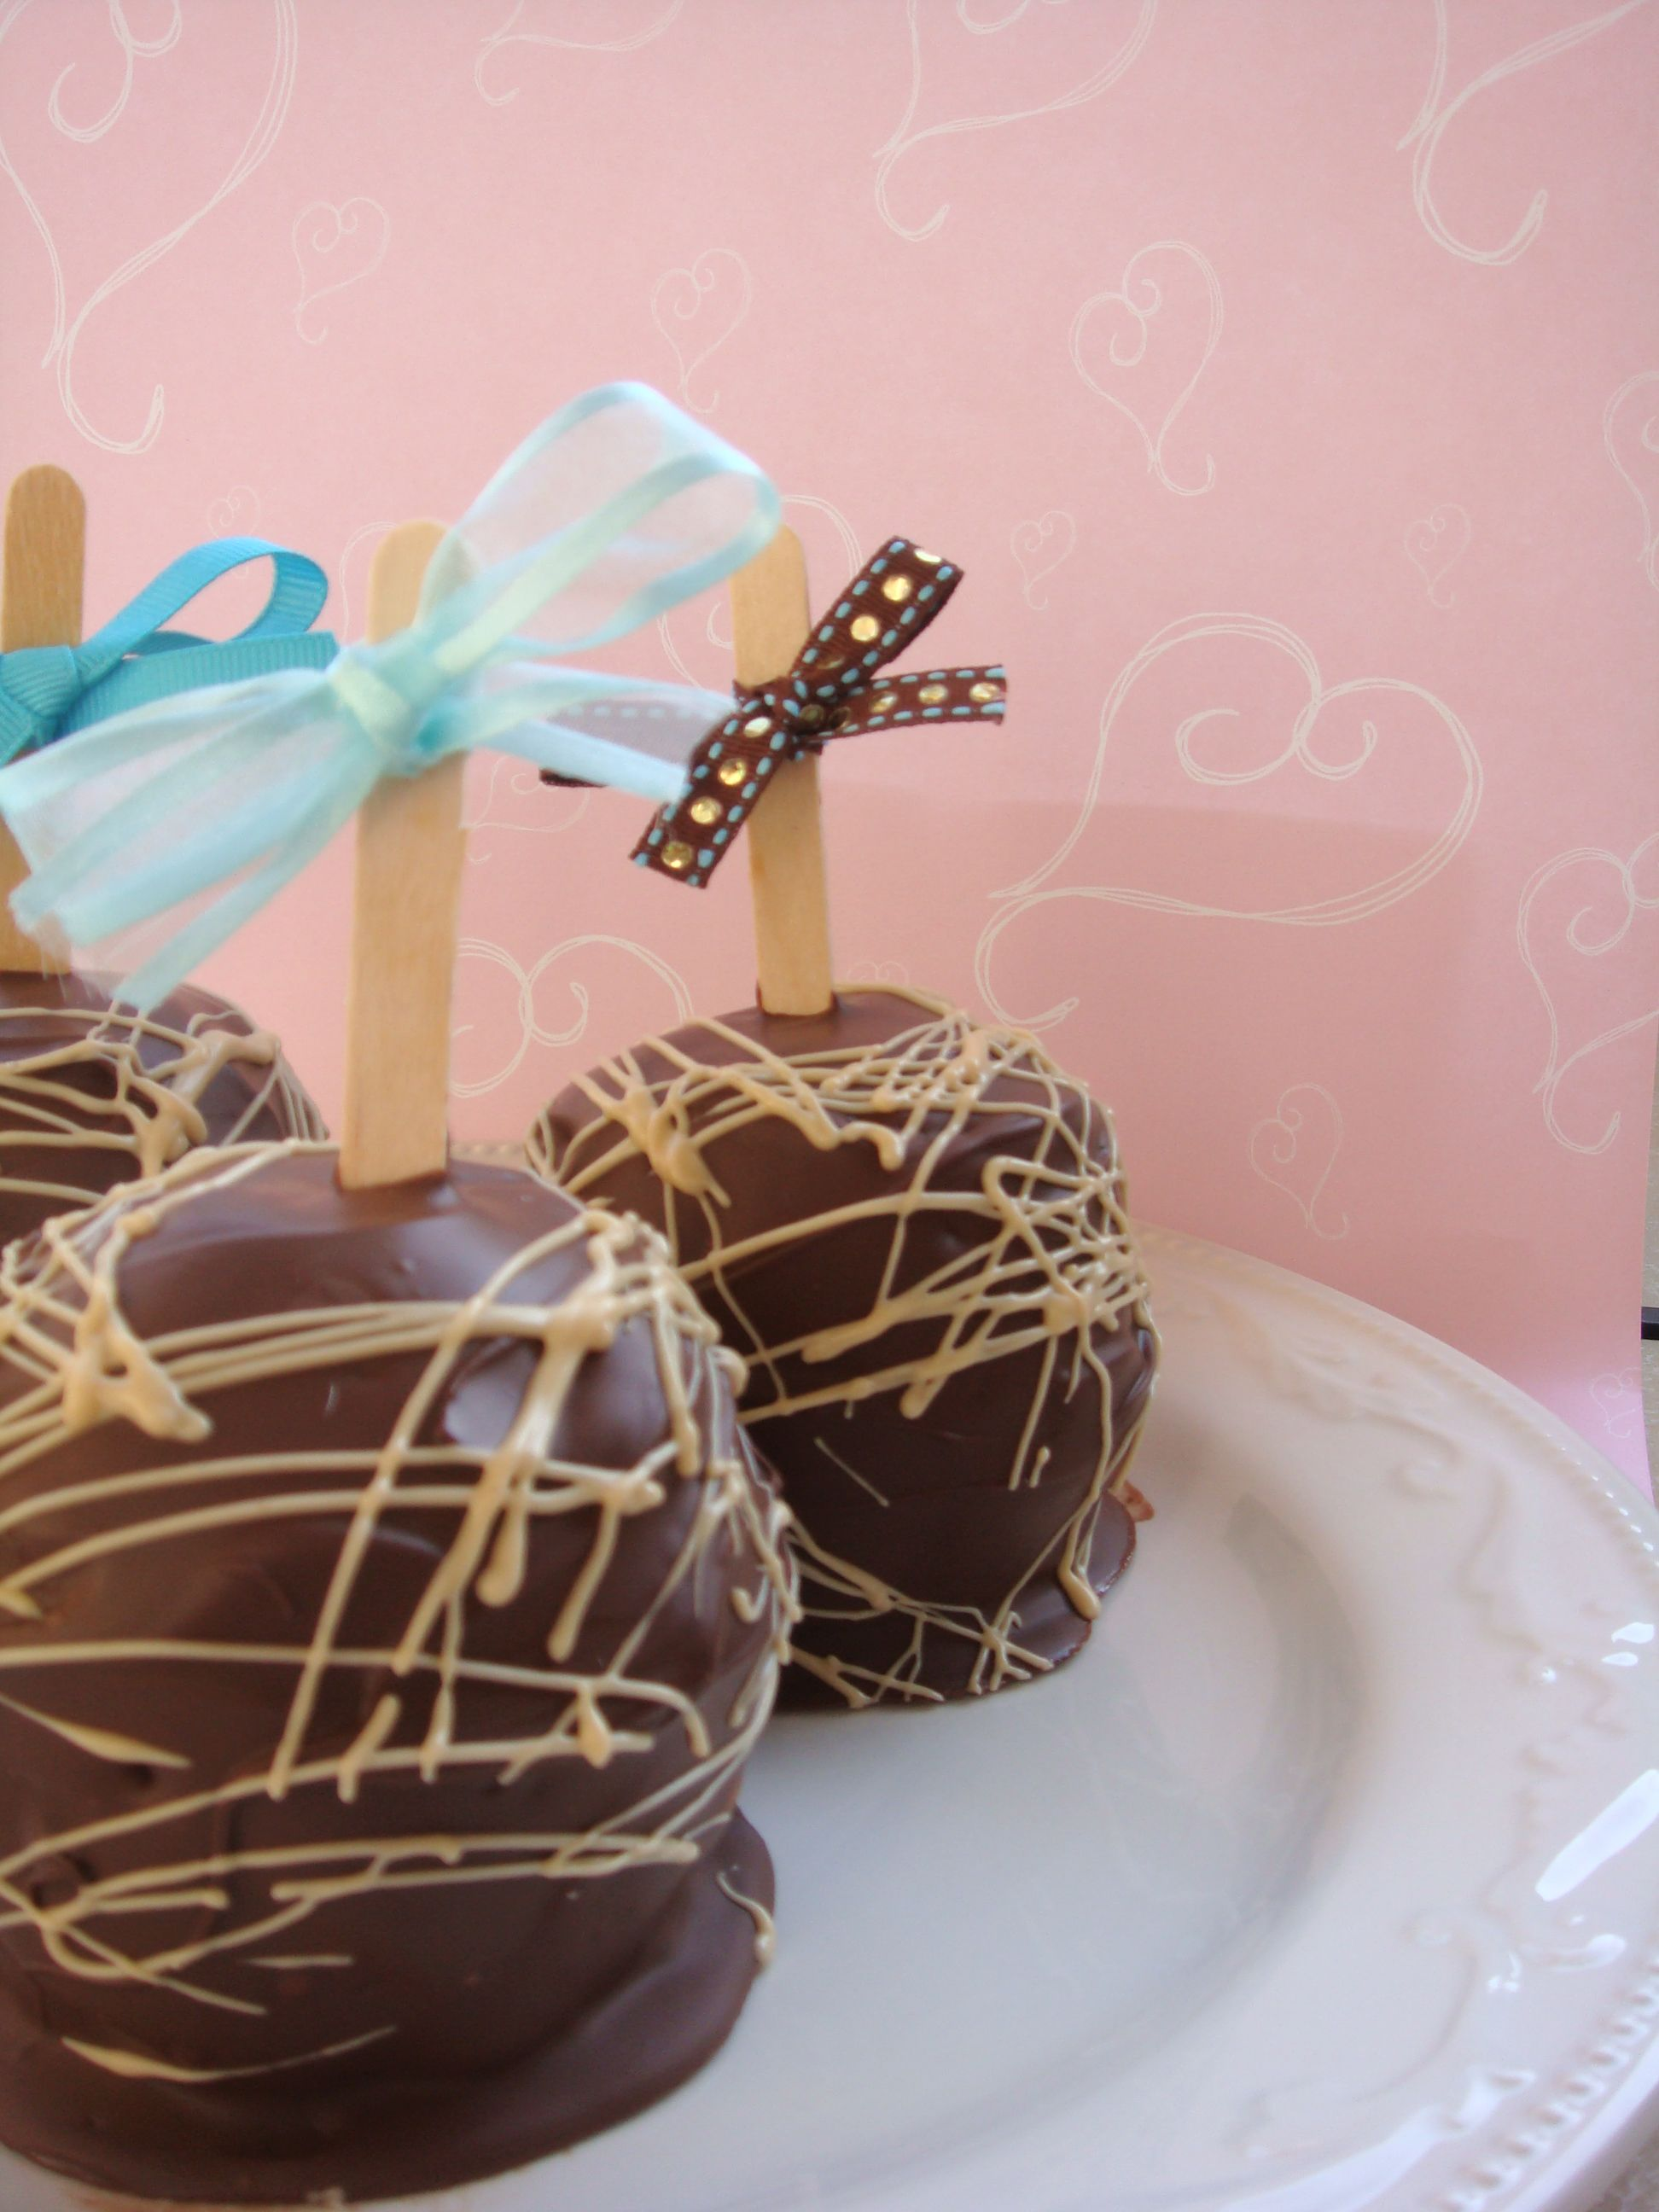 Gourmet Caramel Apples made and photographed by @MySweetCreations ...